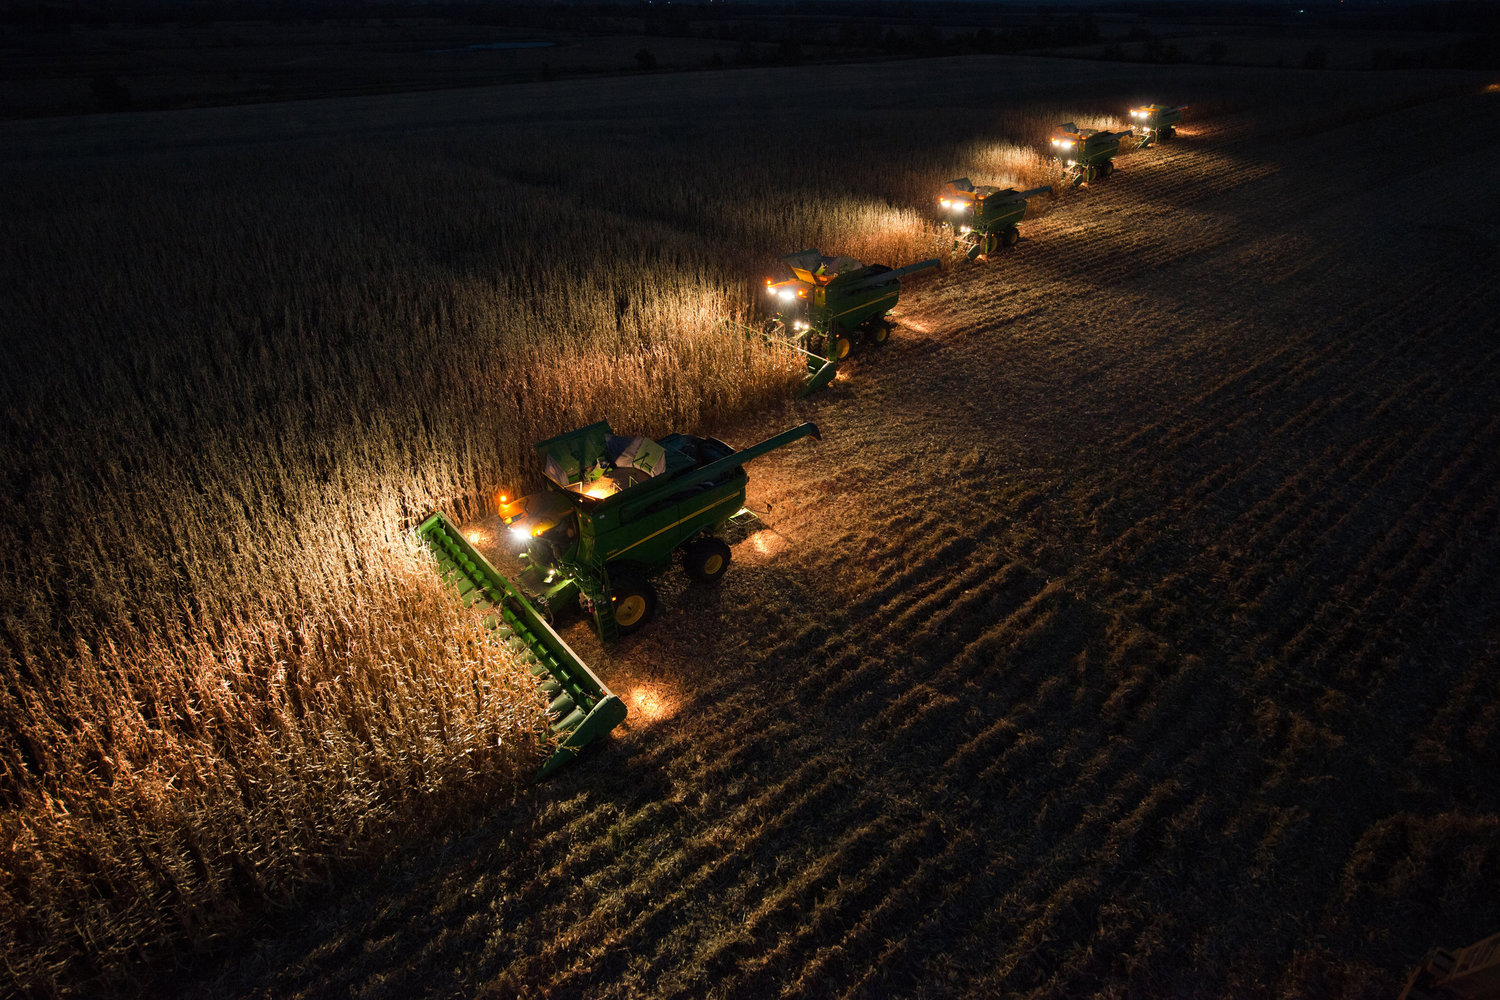 Fall Harvest Wallpaper Images 10 Night Farming Photos That Show Production Doesn T Stop